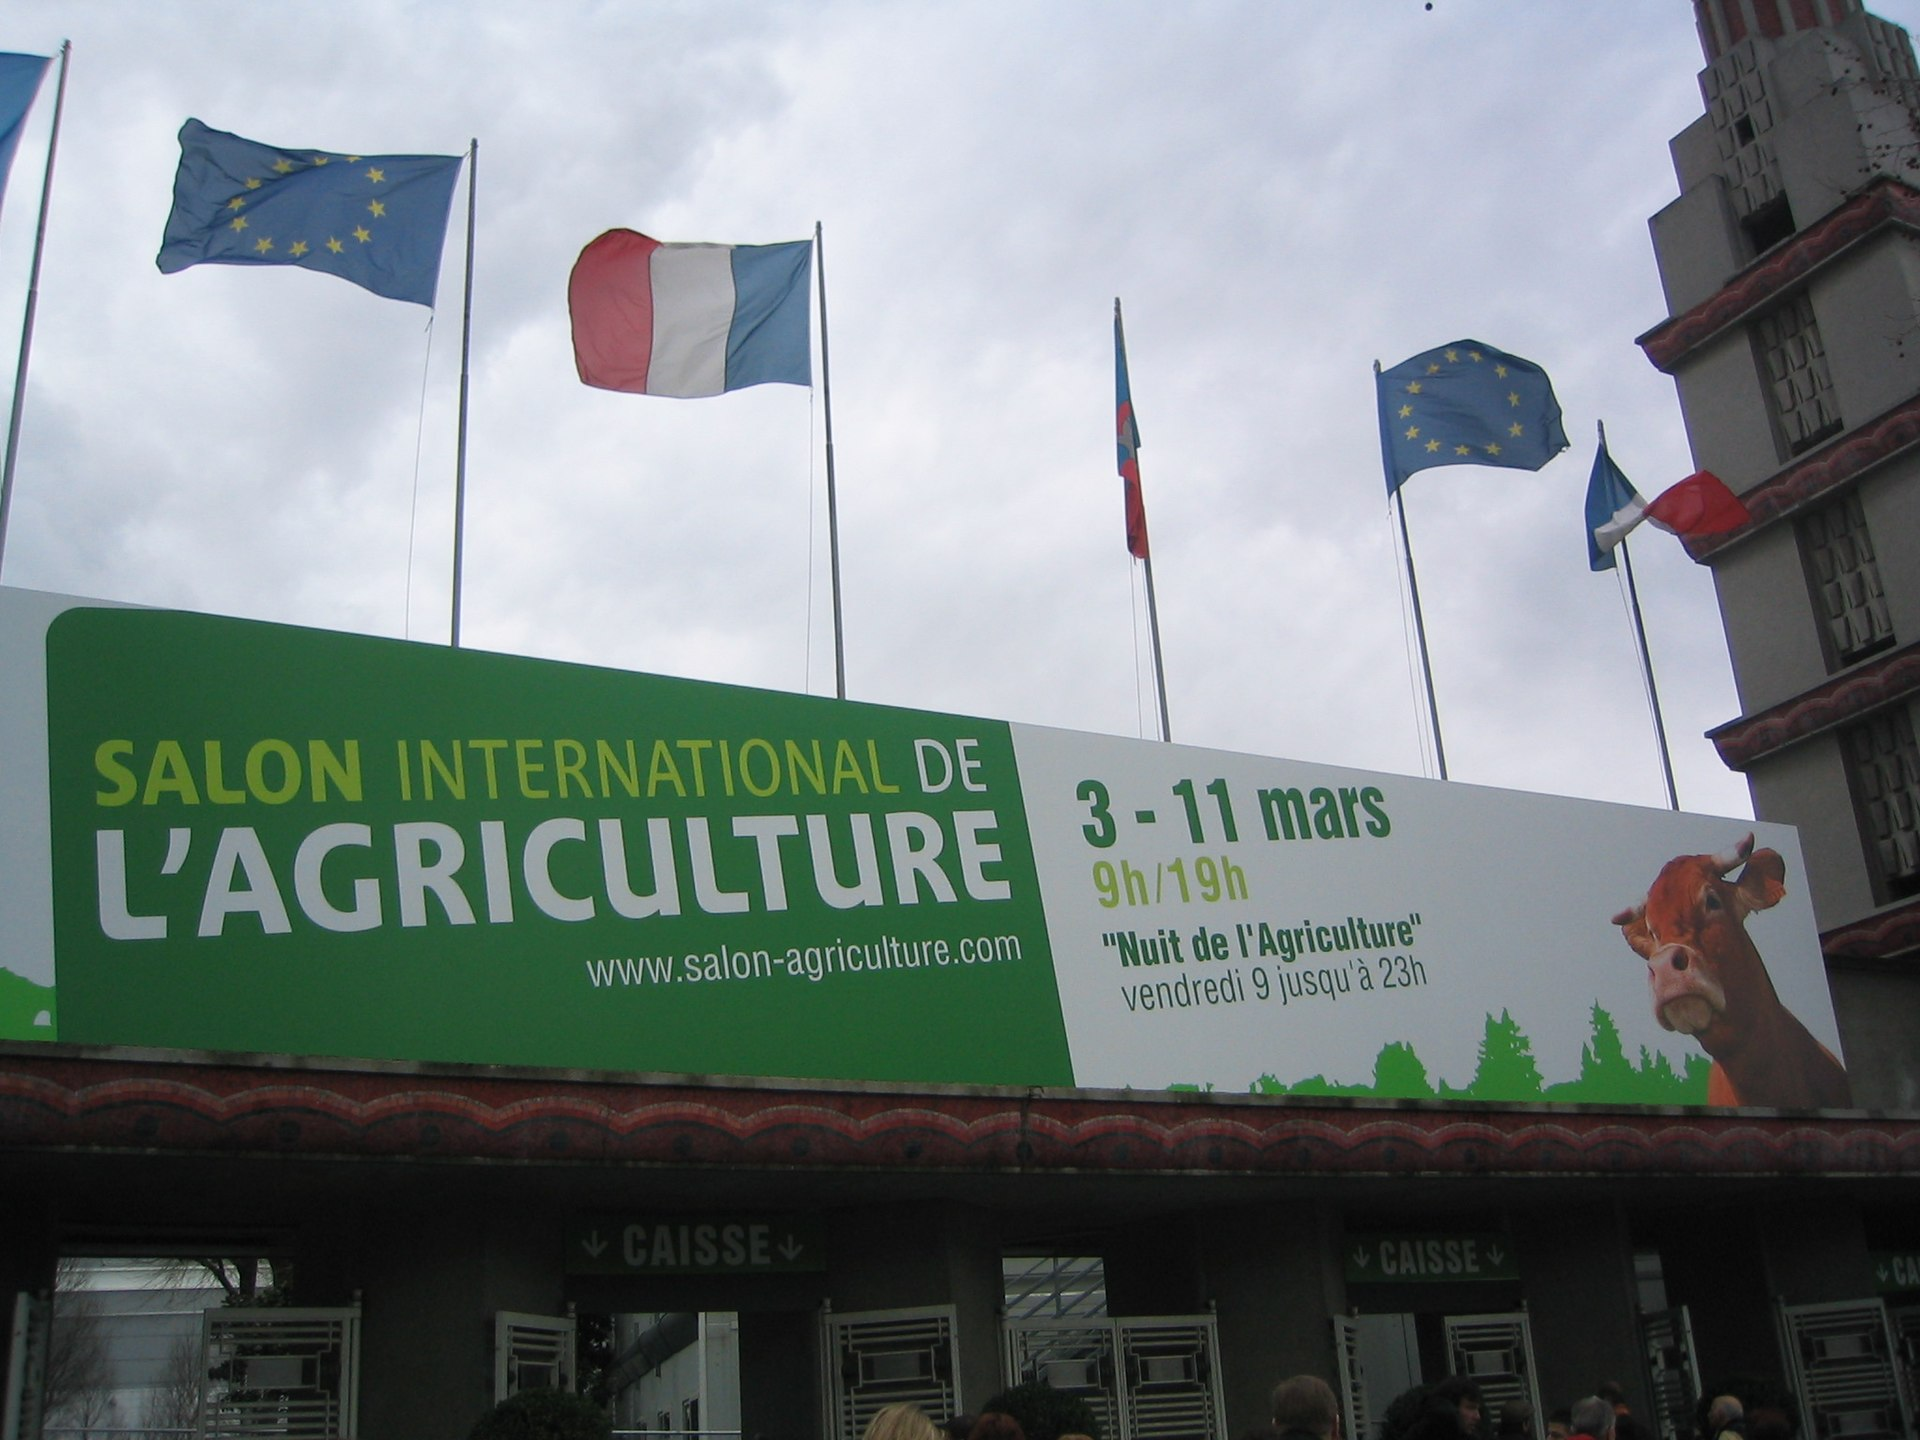 Paris international agricultural show wikipedia - Salon agriculture com ...